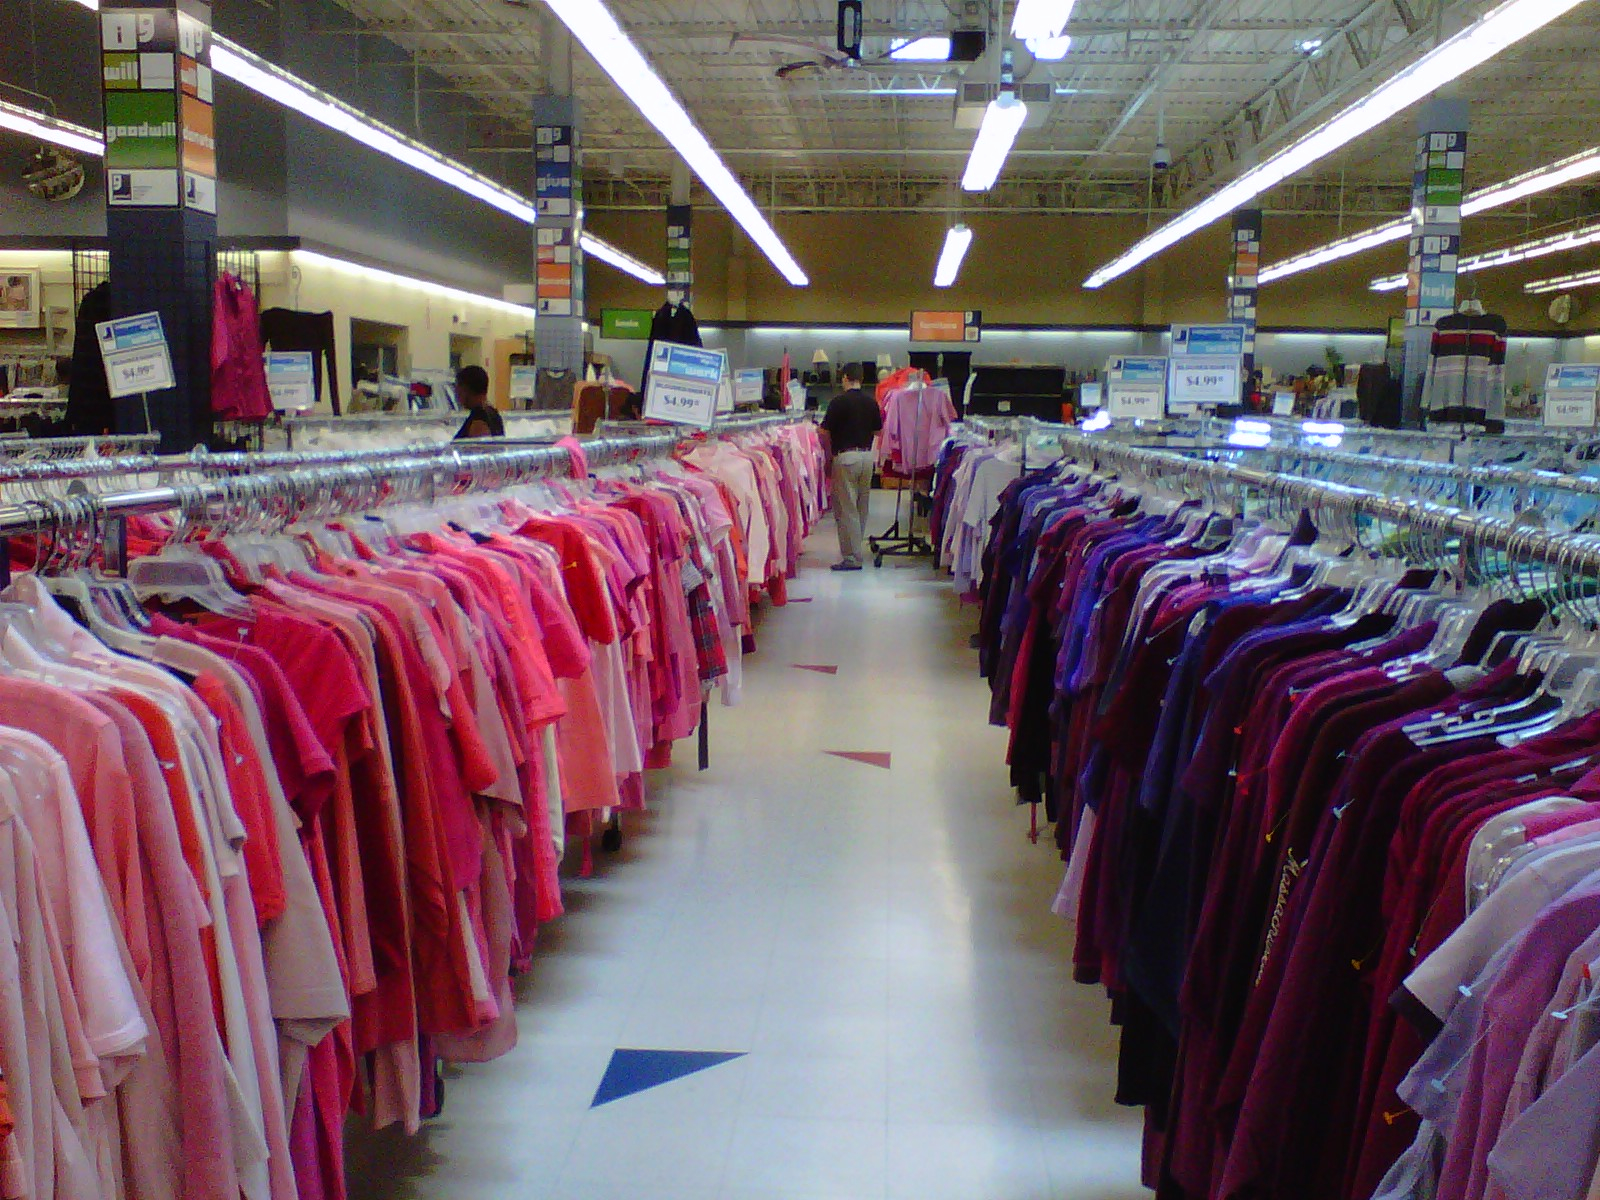 Where to buy used clothes online. Clothing stores